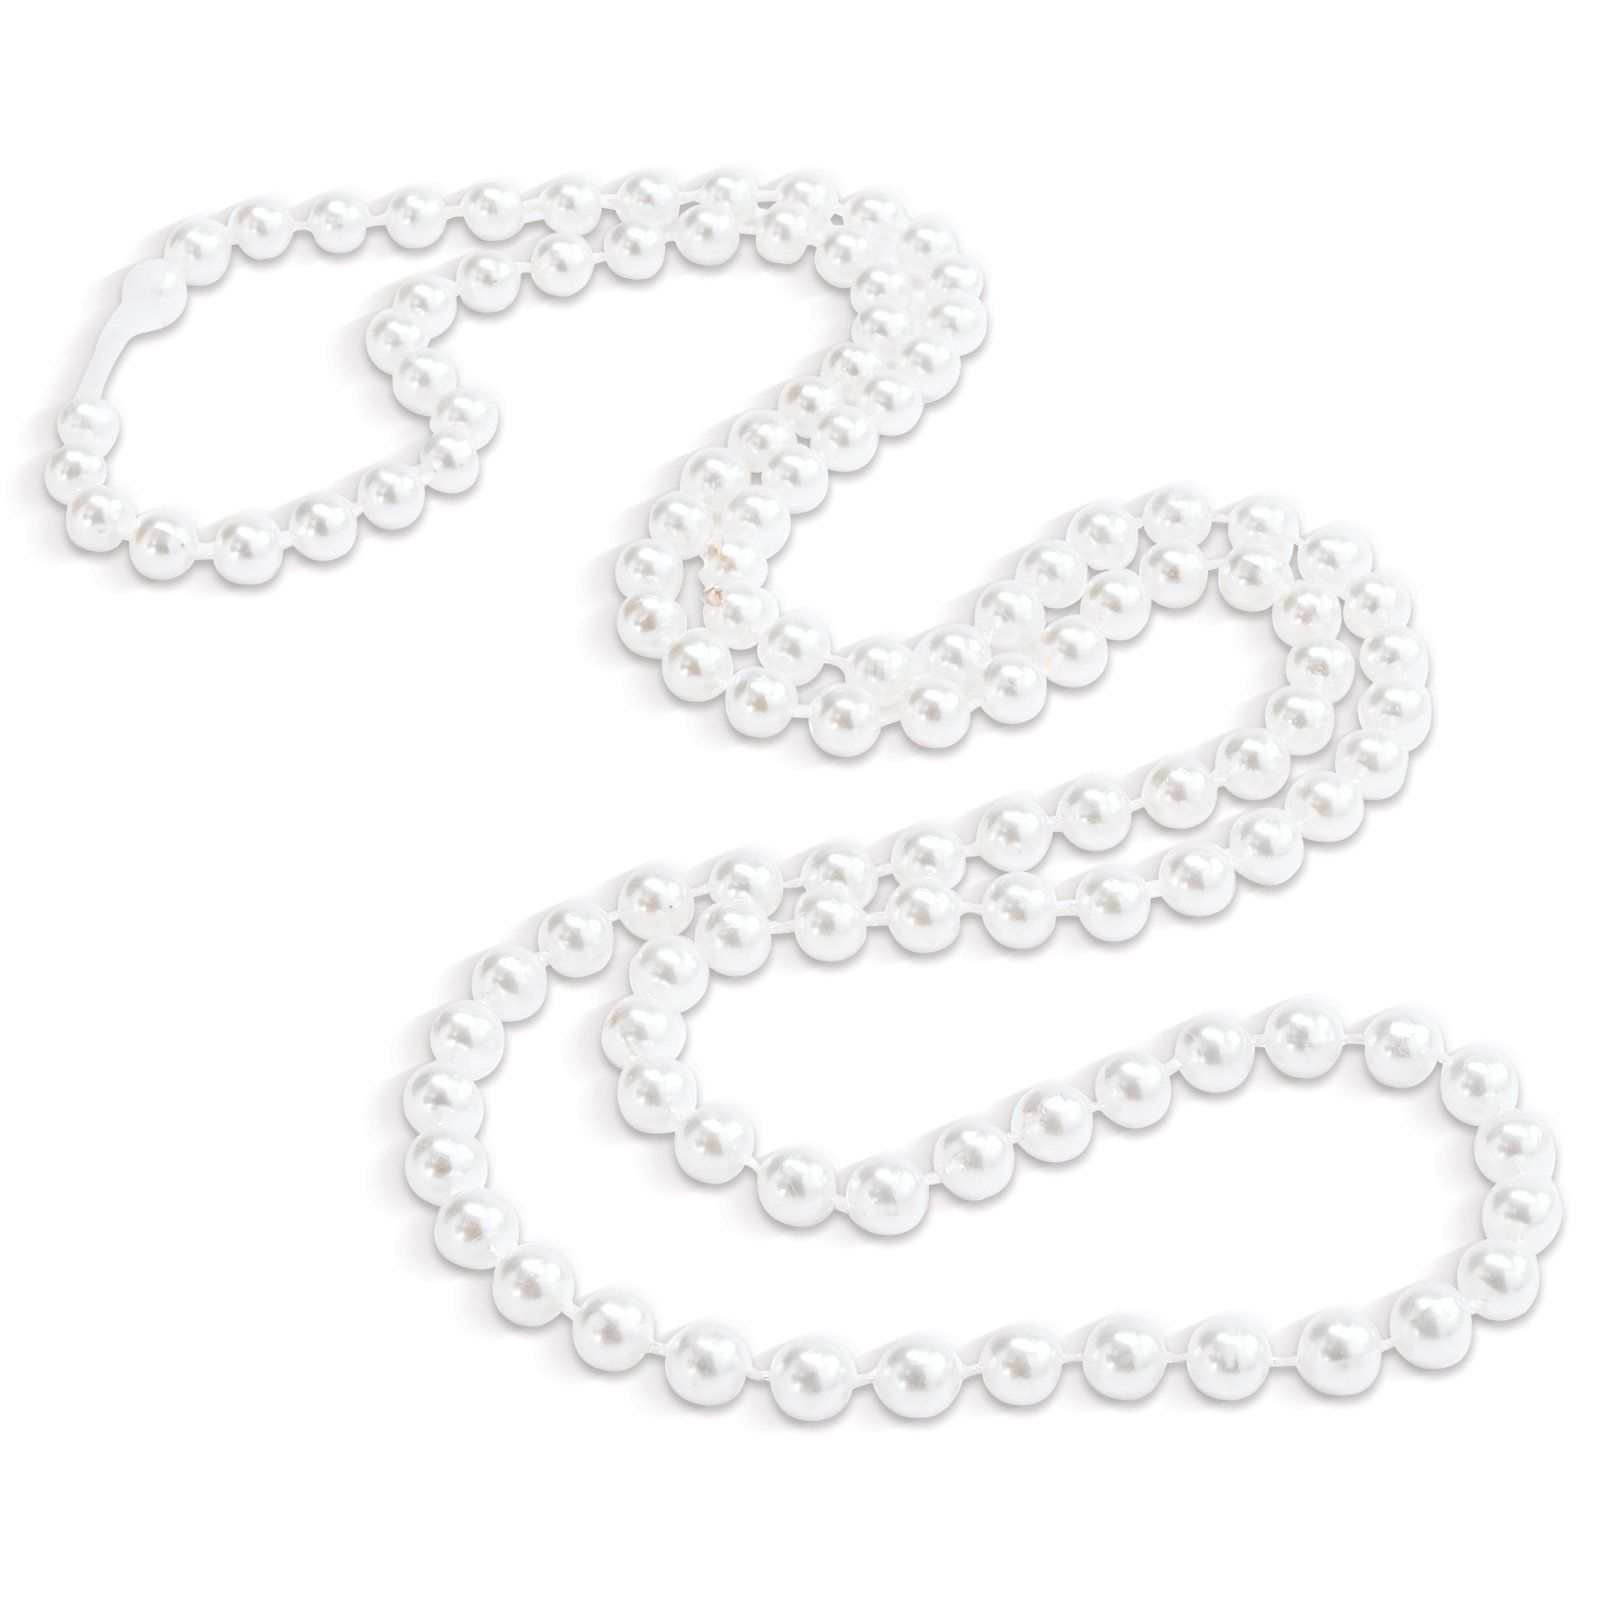 Amazon.com: Faux-Pearl Necklaces Party Accessory (8